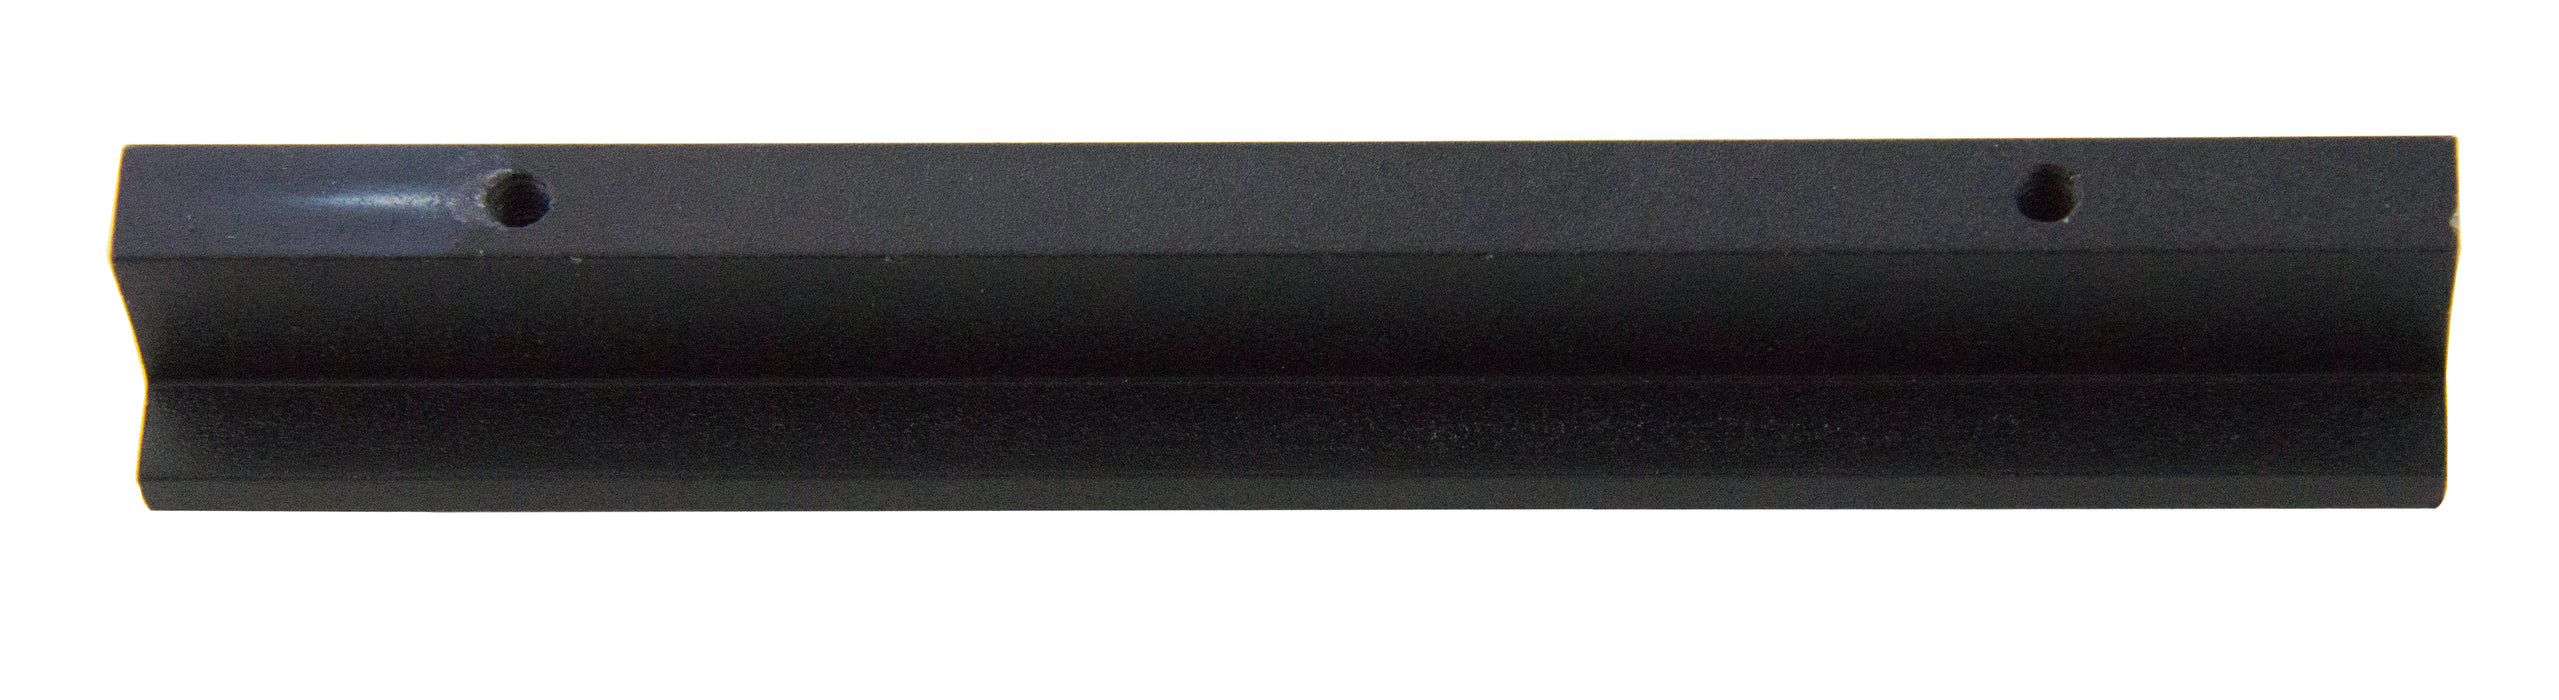 Andrew Claire Collection 96mm Contemporary Aluminum Pull Black Wrinkle Powder (AC-80215.BKW)